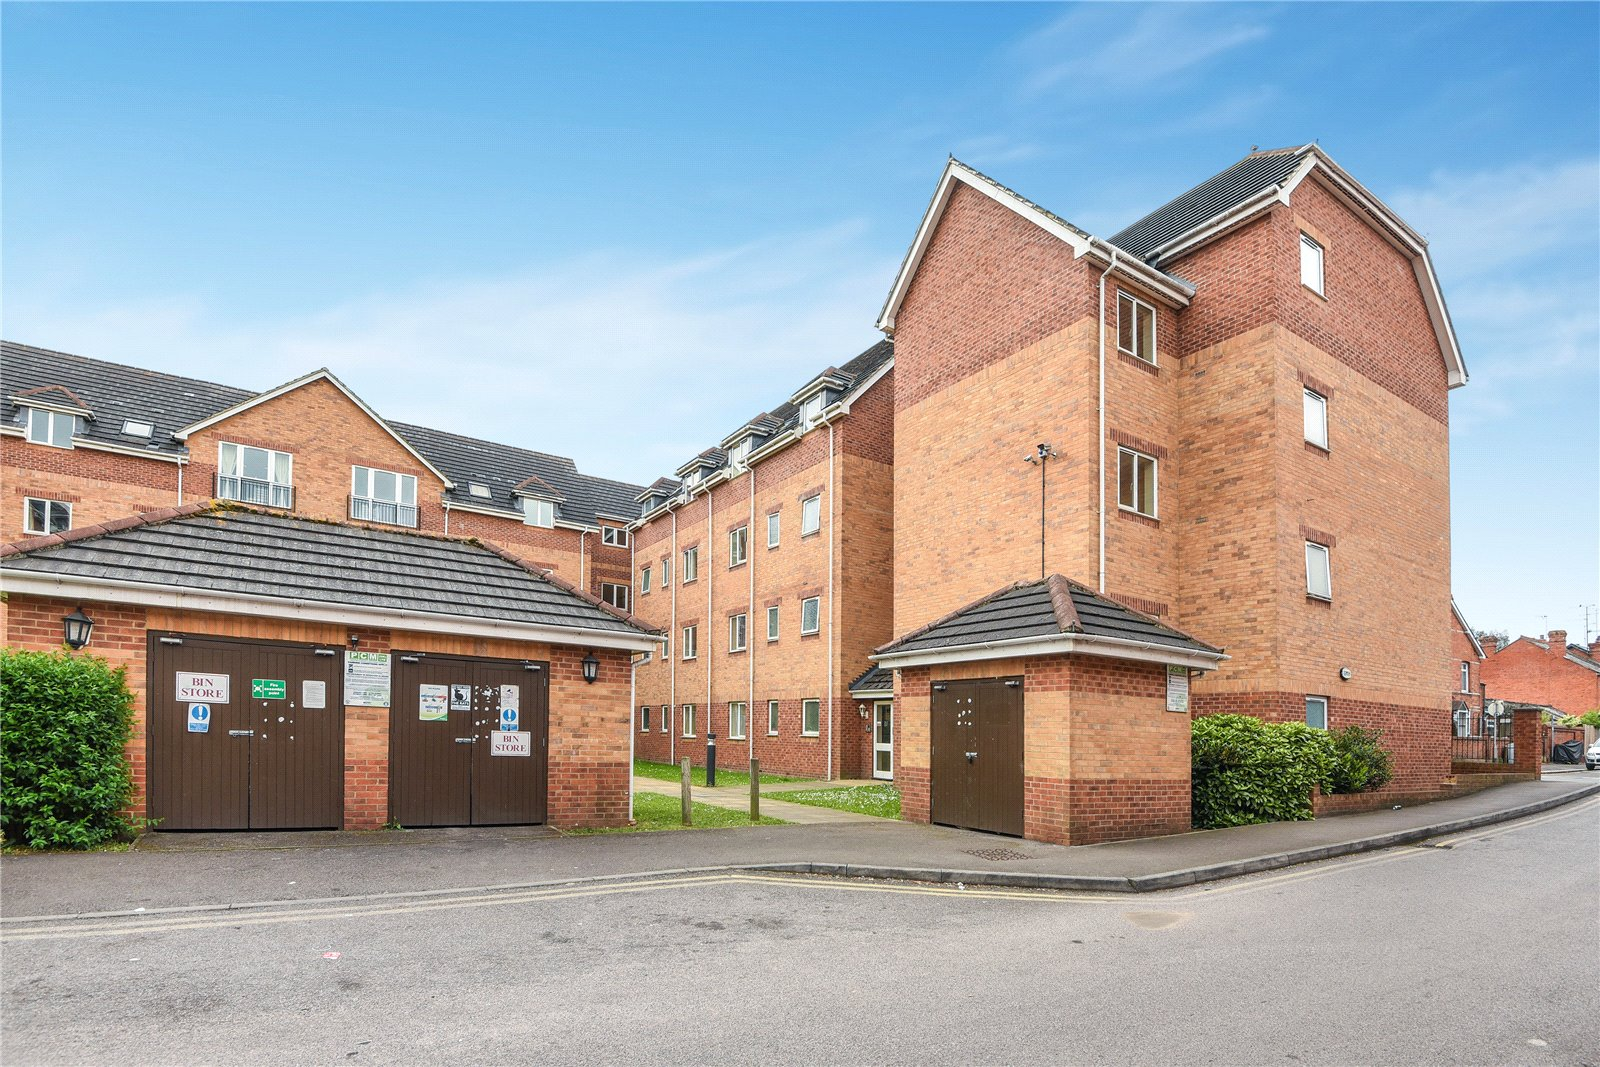 2 Bedrooms Apartment Flat for sale in Westgate Court, Oxford Road, Reading, Berkshire, RG30